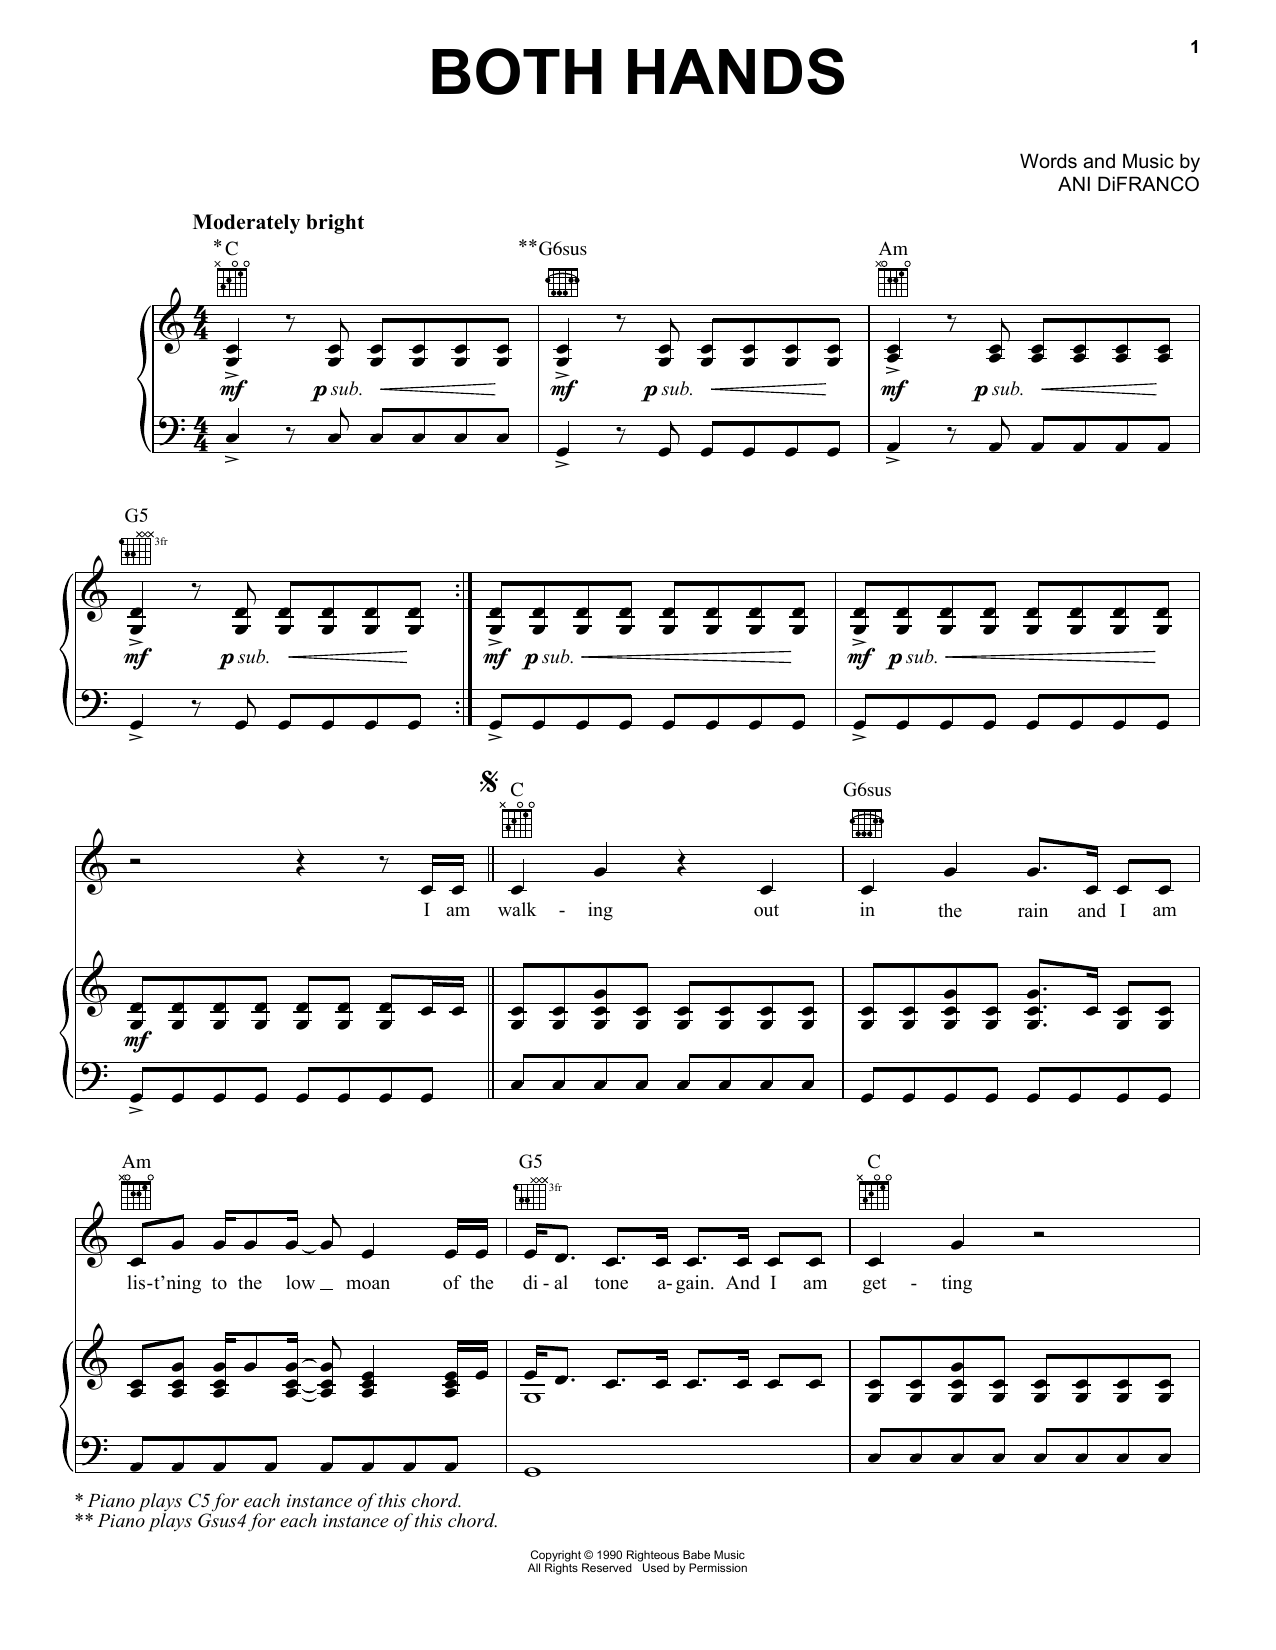 Both Hands Sheet Music